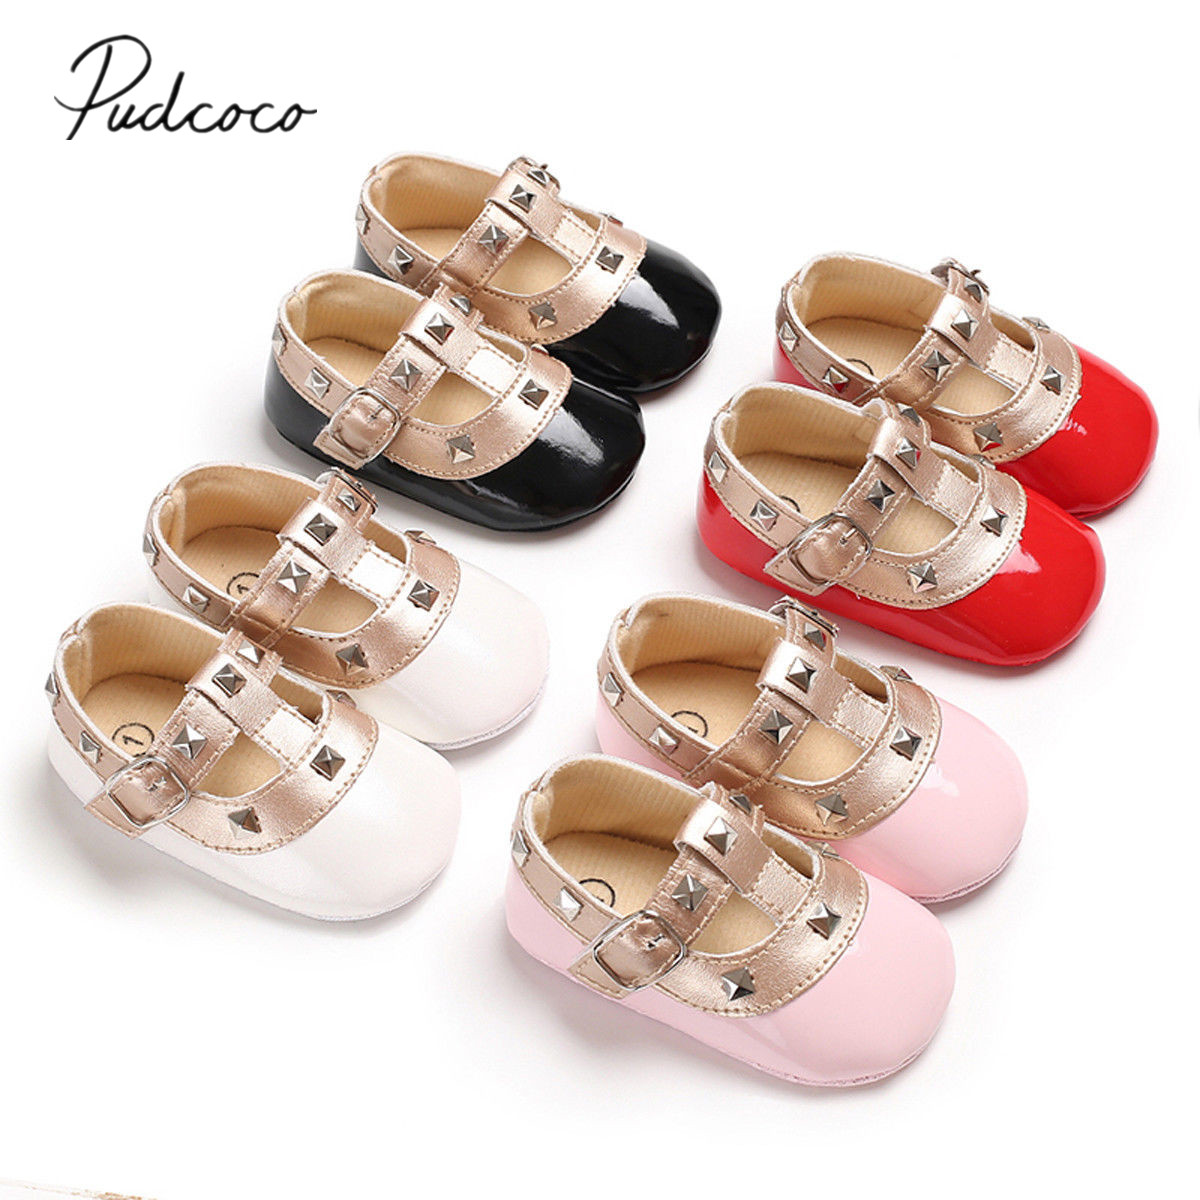 New Newborn Baby Girl Bow Princess Shoes Soft Sole Crib Leather Solid Buckle Strap Flat With Heel Baby Shoes 4 Colors